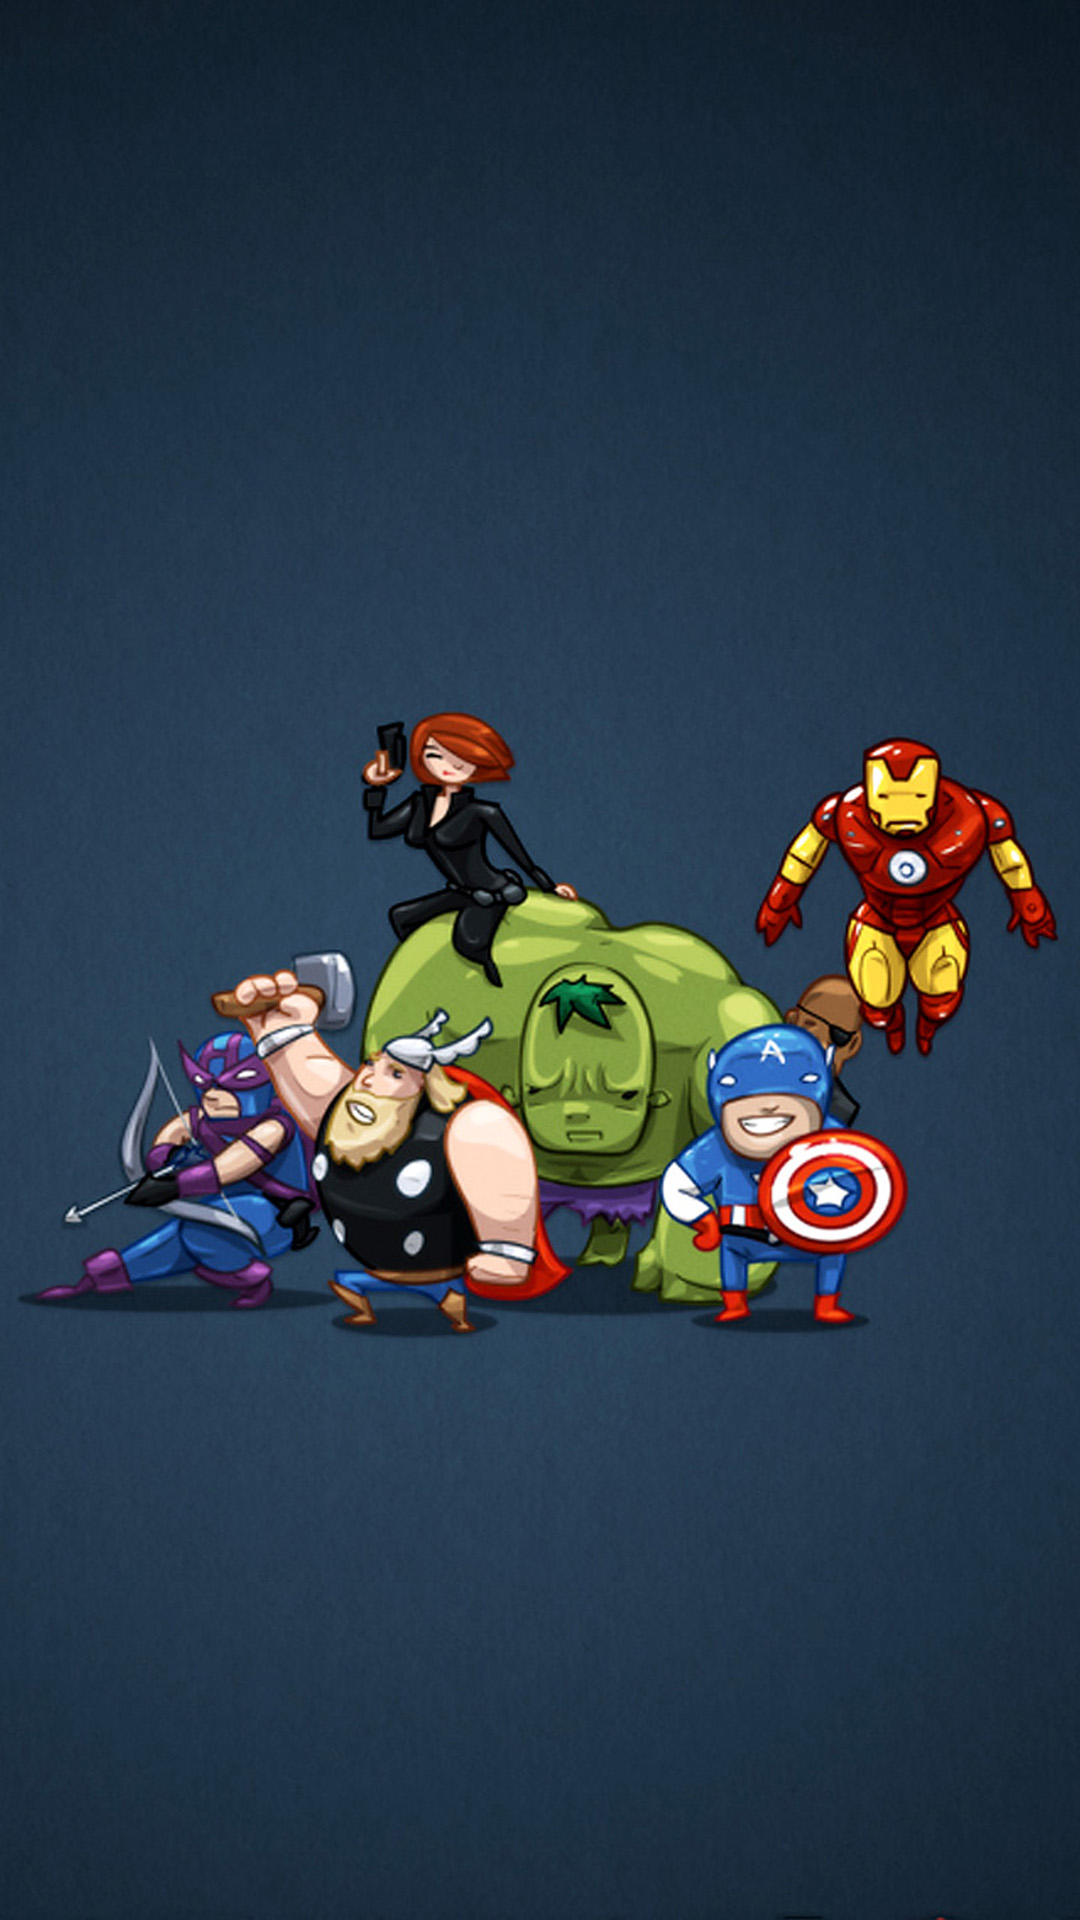 Avengers iphone wallpaper tumblr - Iphone Wallpaper Tumblr Marvel 6 Photo 3 The Neat And Nerdy Backpack Lifehackercom